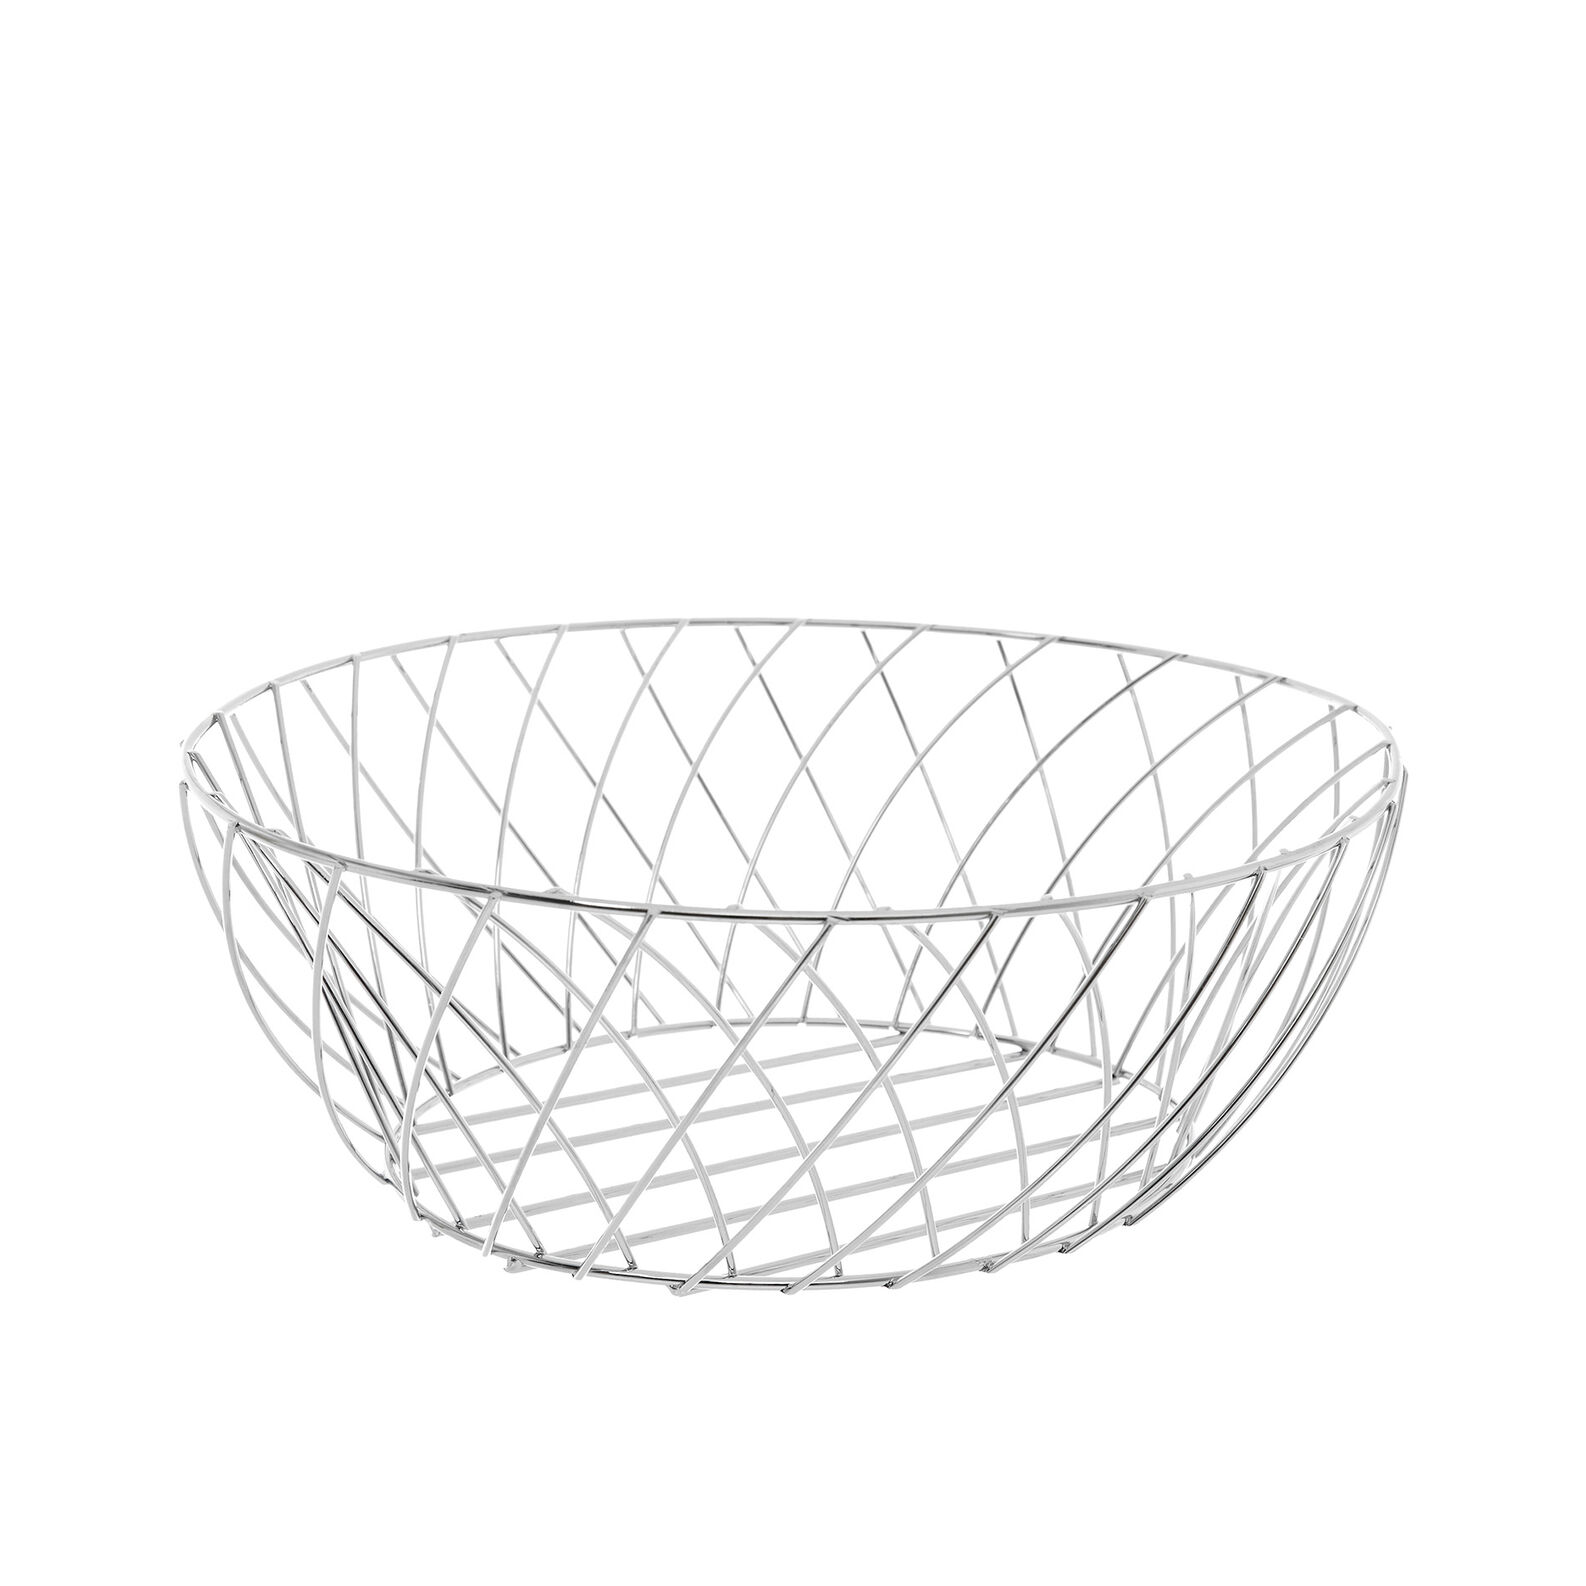 Steel wire basket